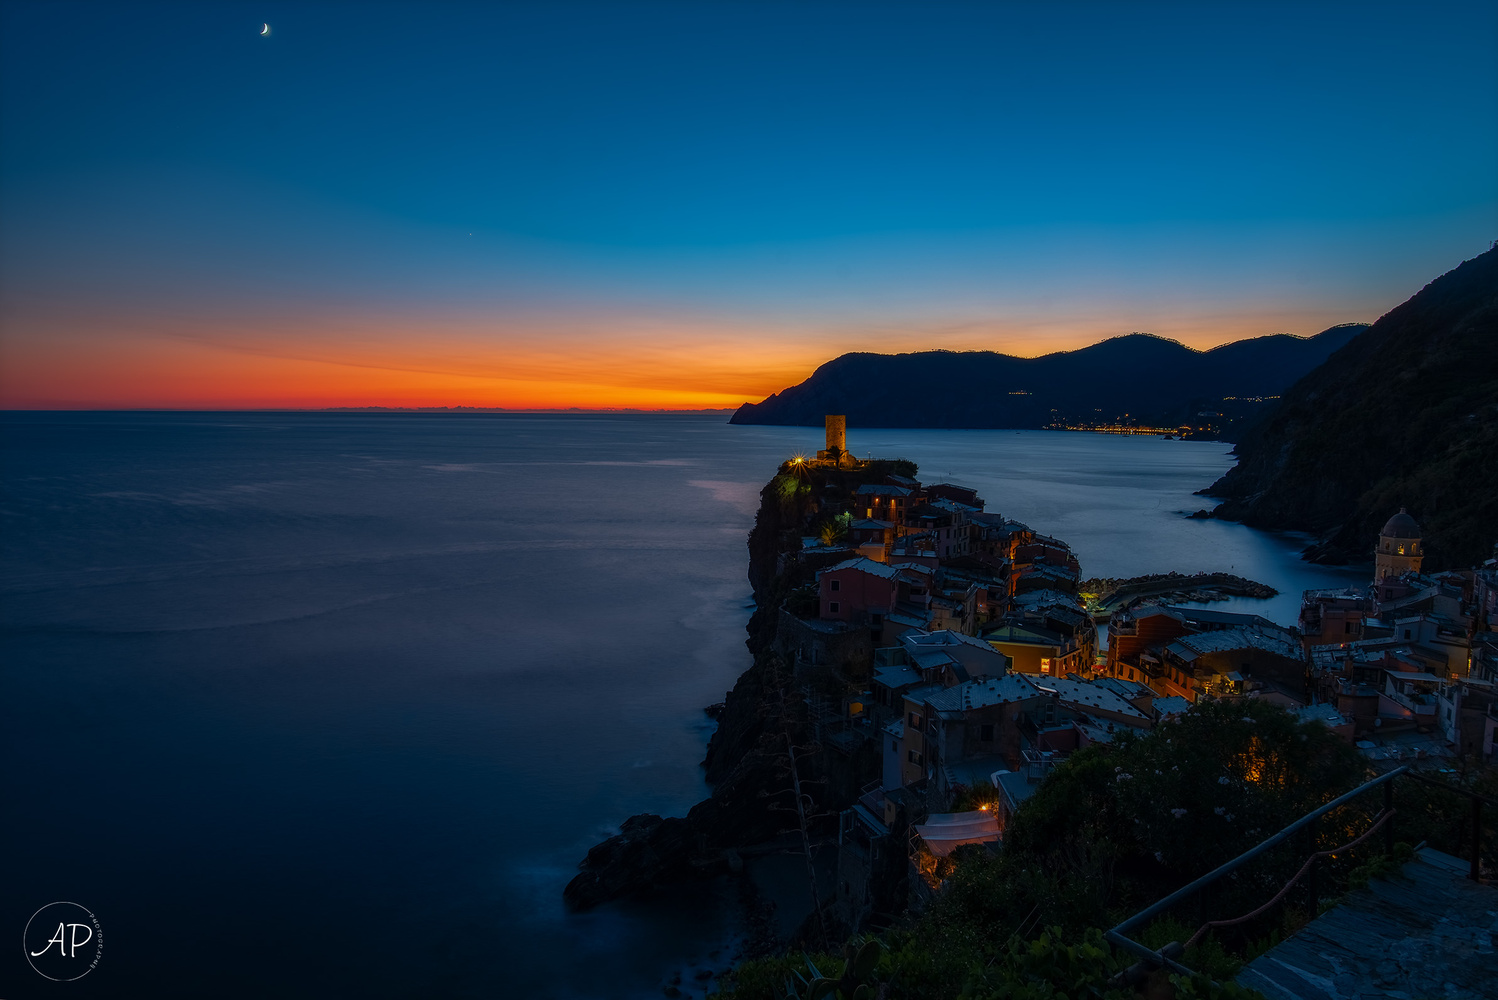 Vernazza Sunset by ANGELO PERRONE